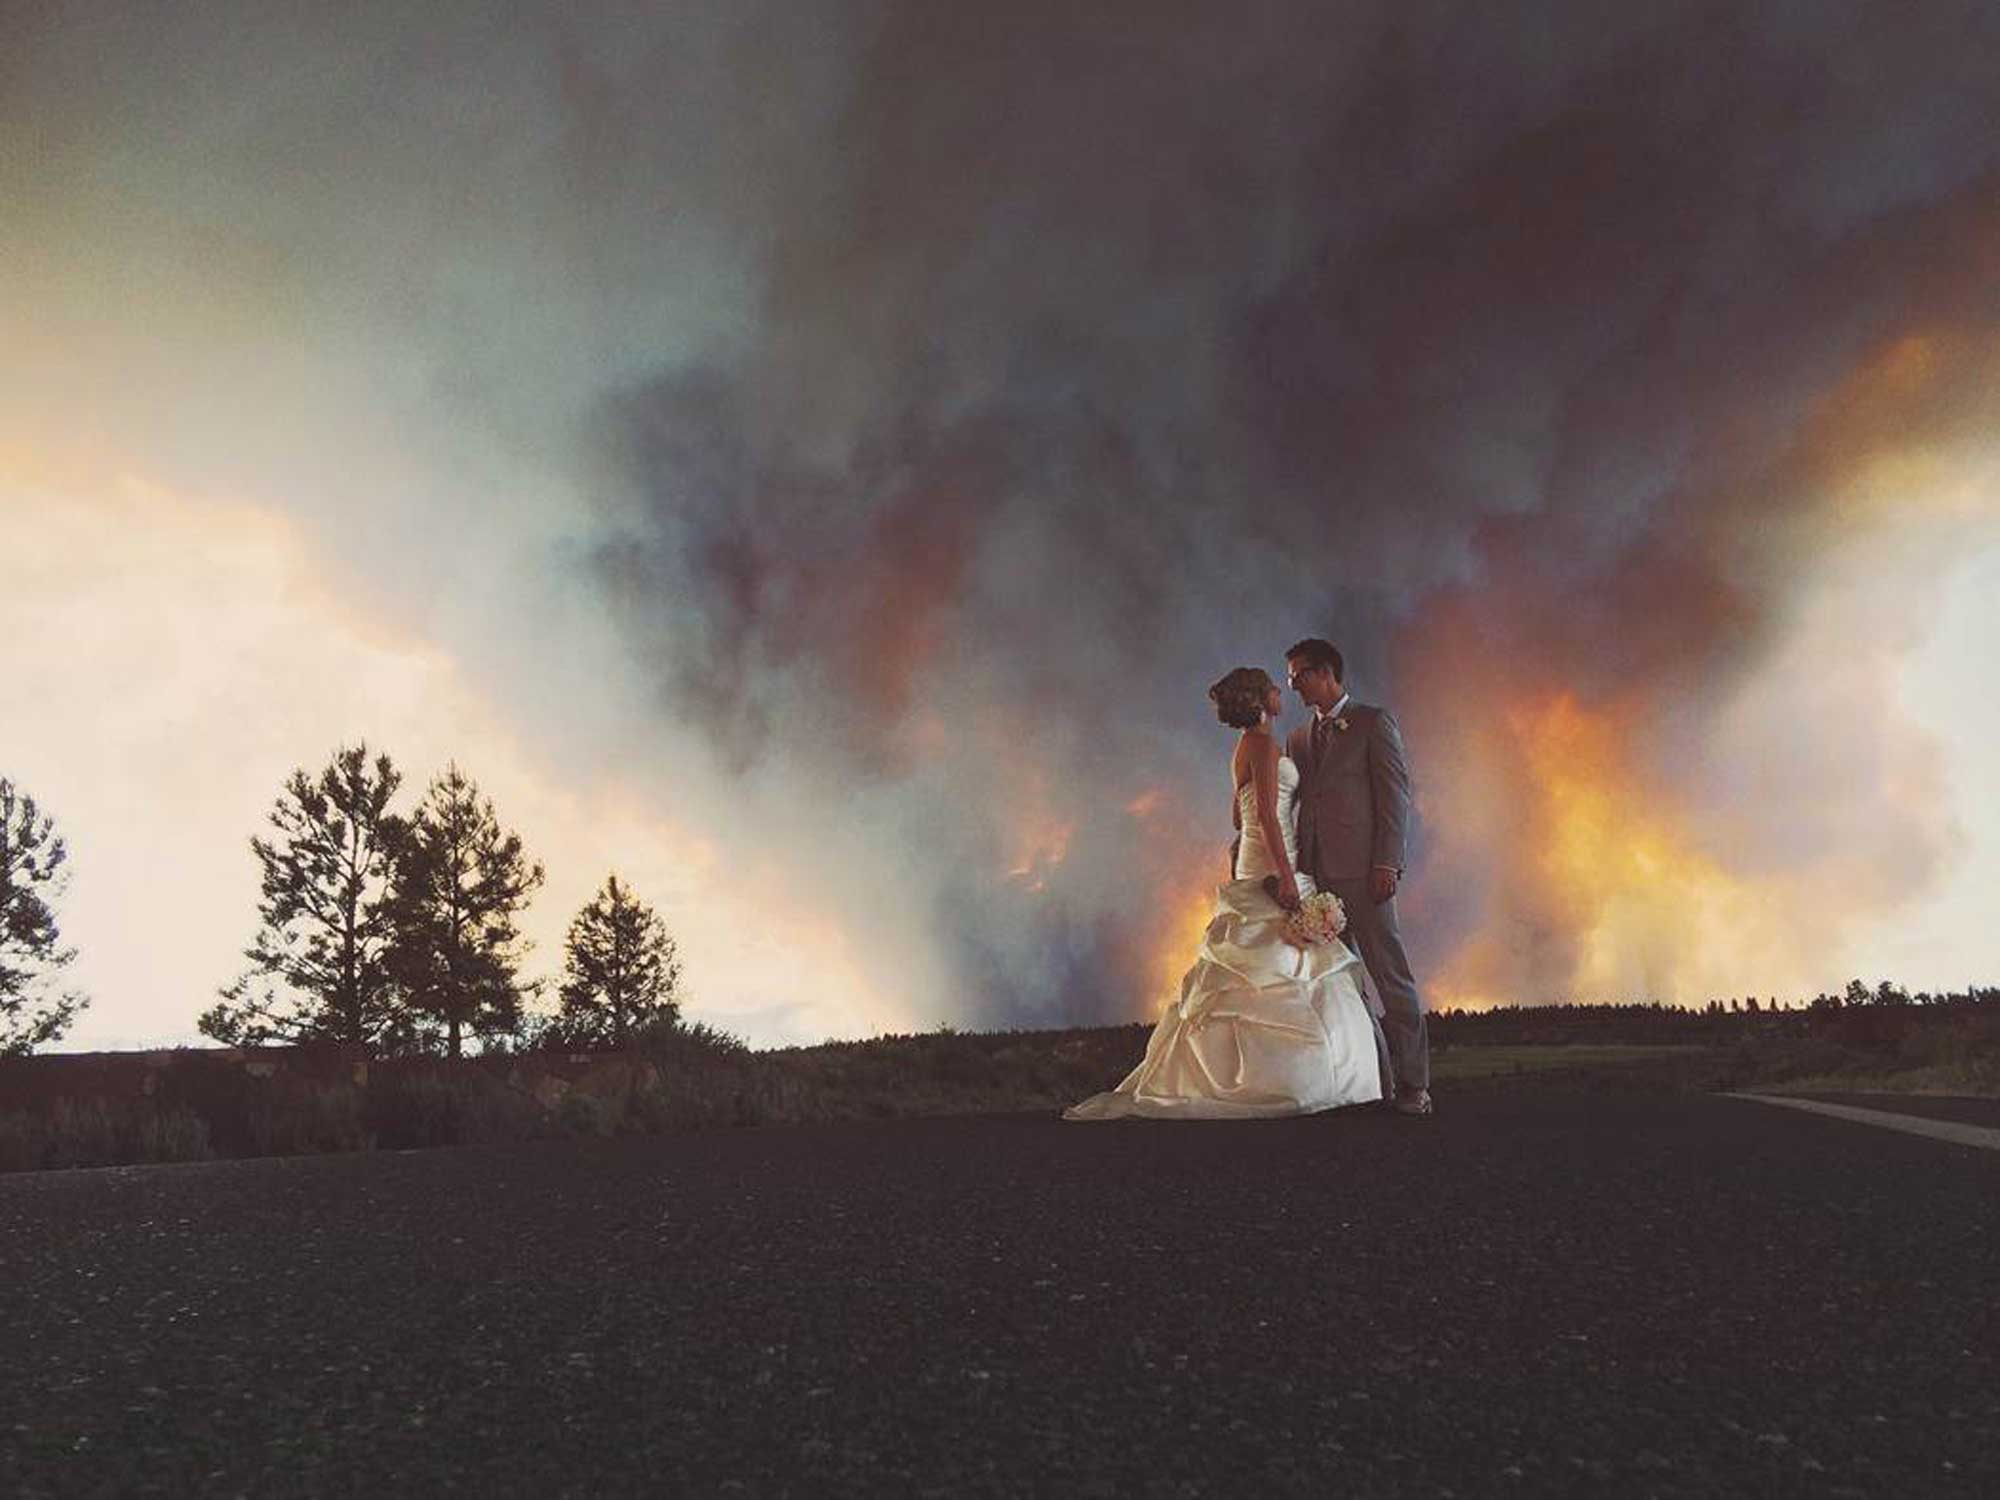 Josh Newton, newlyweds Michael Wolber and April Hartley pose for a picture near Bend, Ore. as a wildfire burns in the background, June 7, 2014.